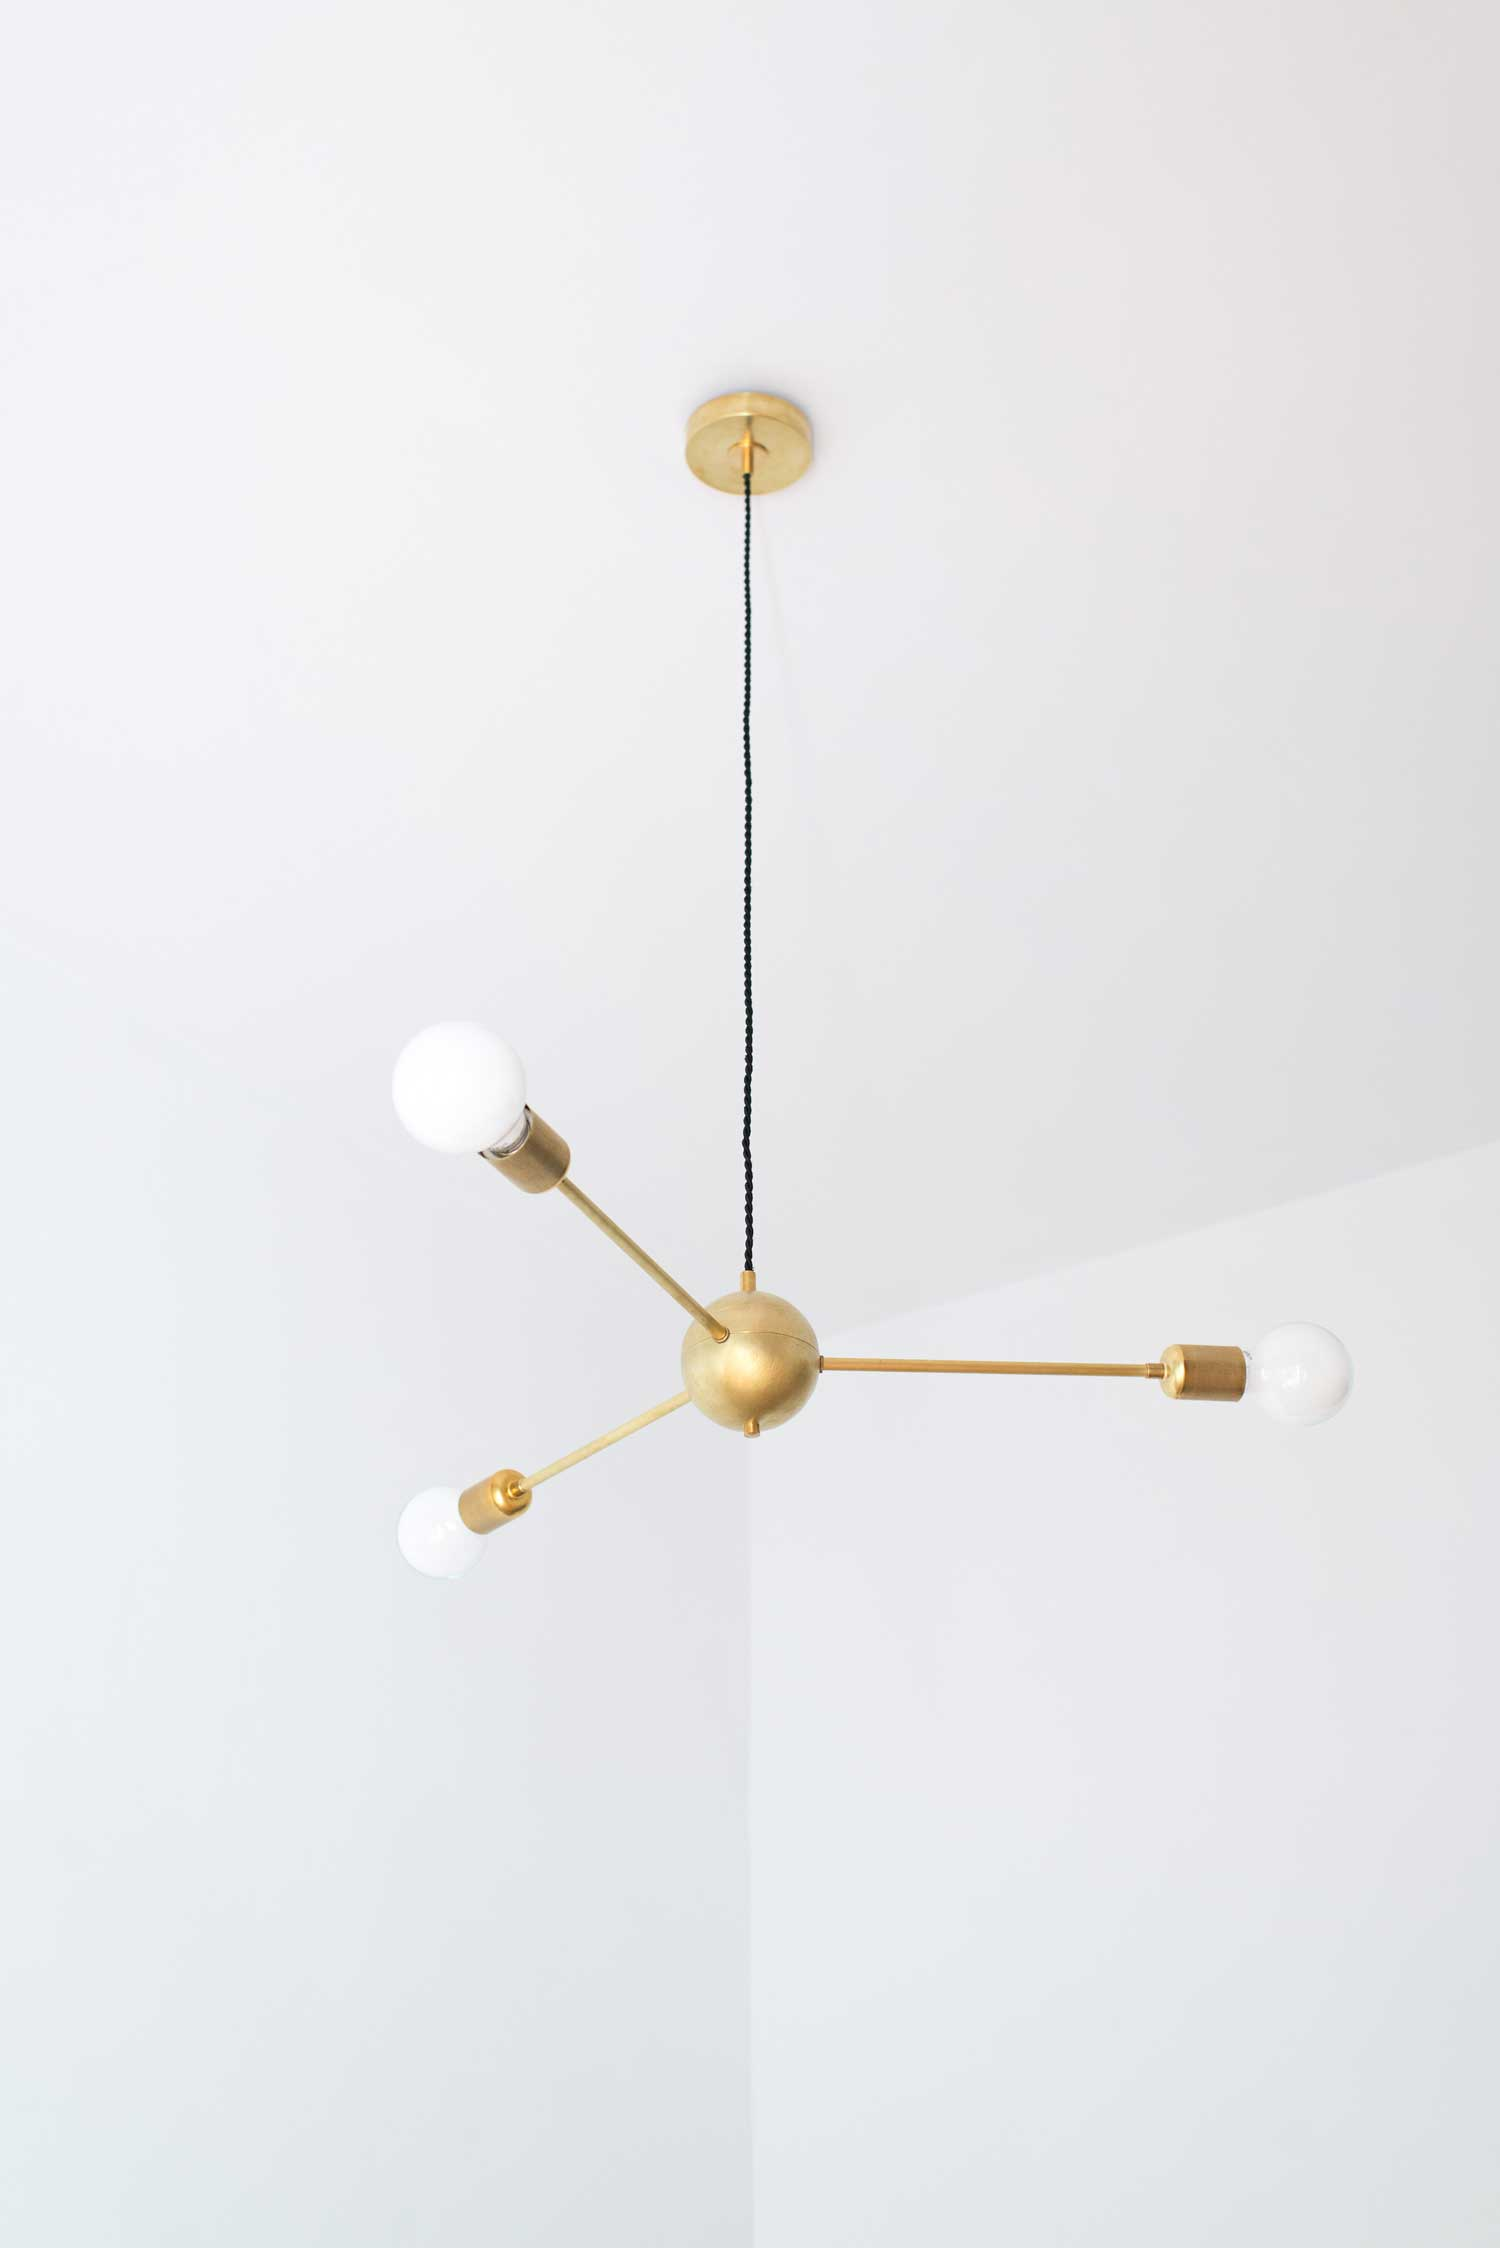 Quirky Handmade Lighting by Antoñito y Manolín // Spain.